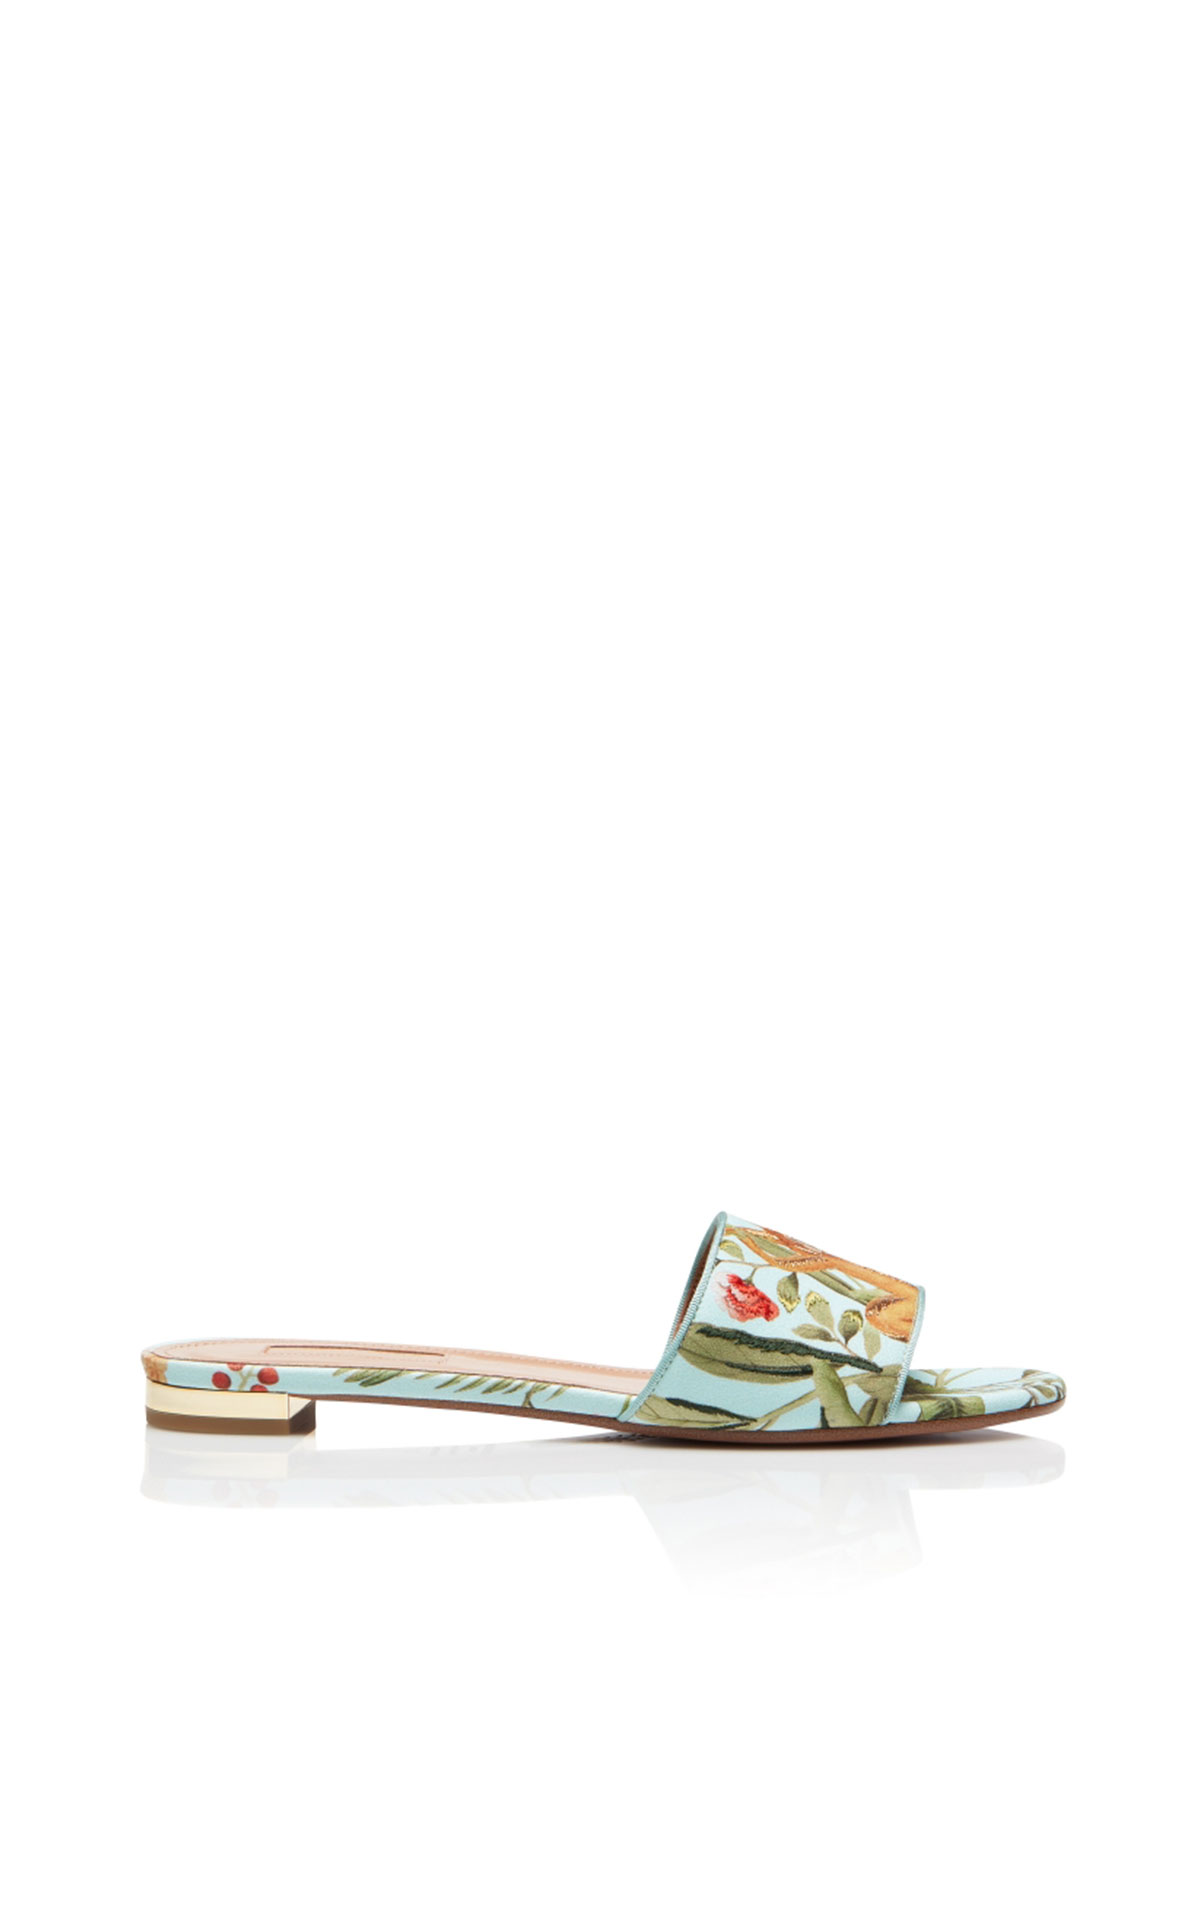 Aquazzura De gournay slide aqua from Bicester Village